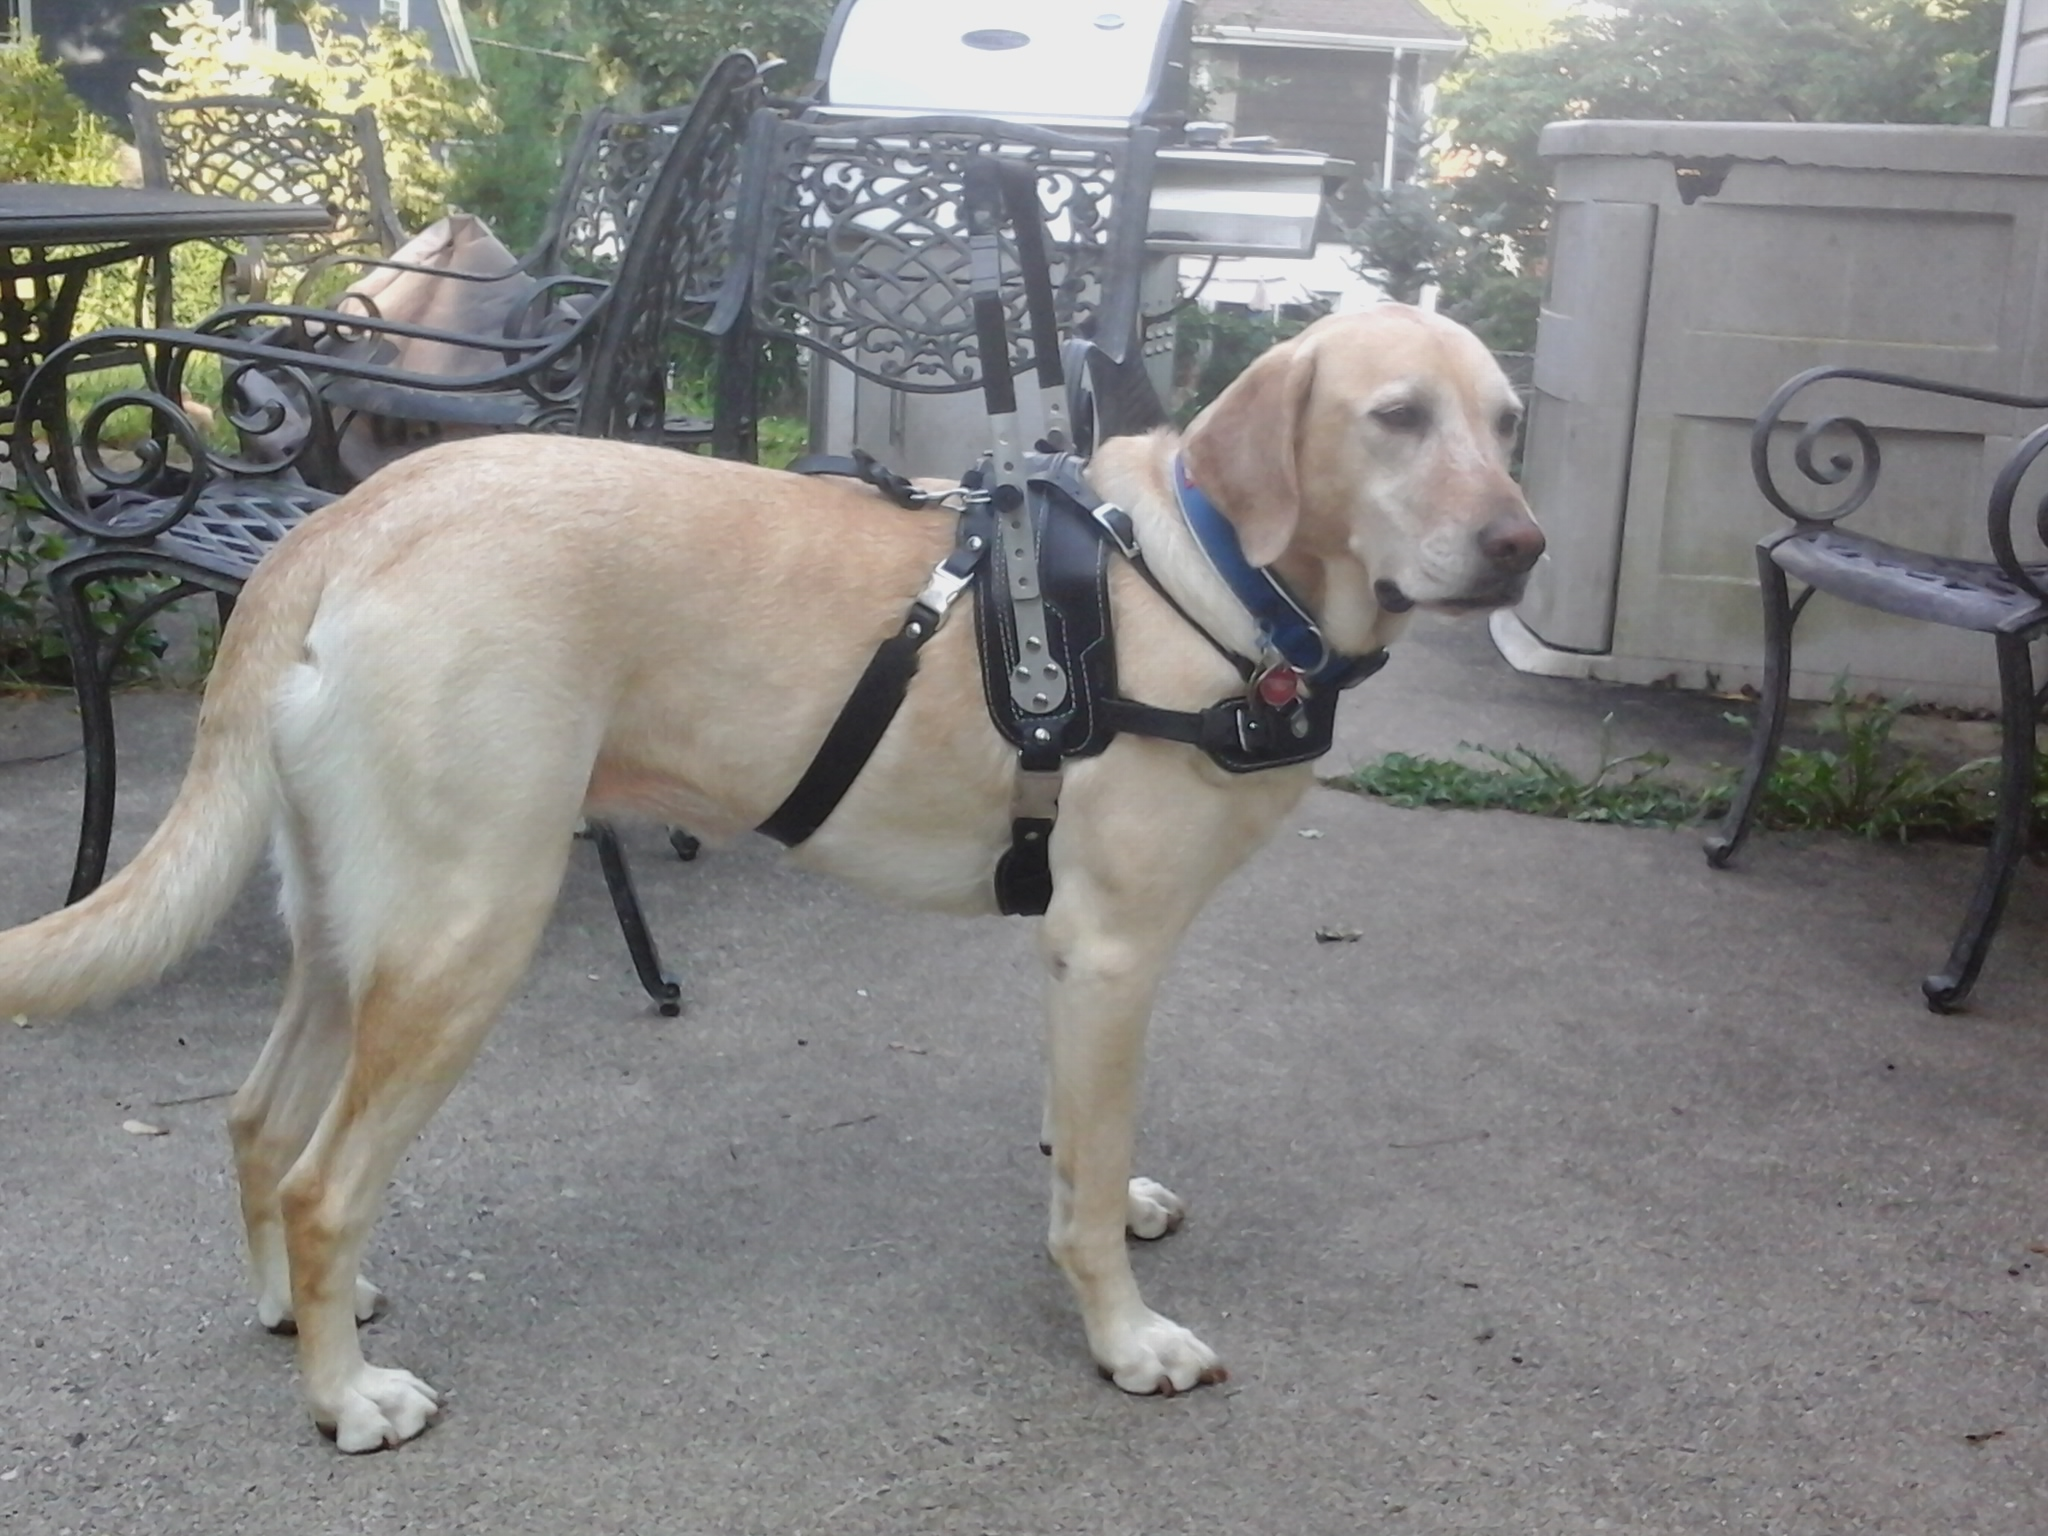 dog harness   The Pitter Patter of Paws